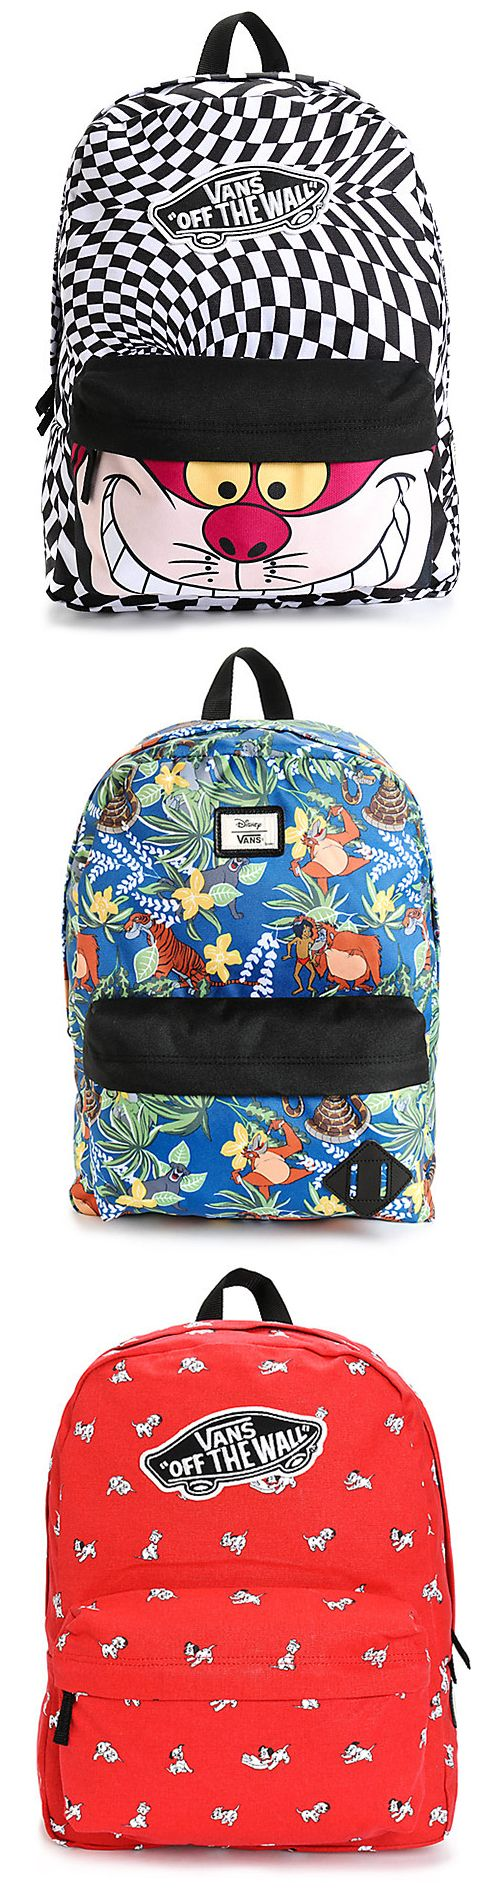 New Disney x Vans backpacks are here!